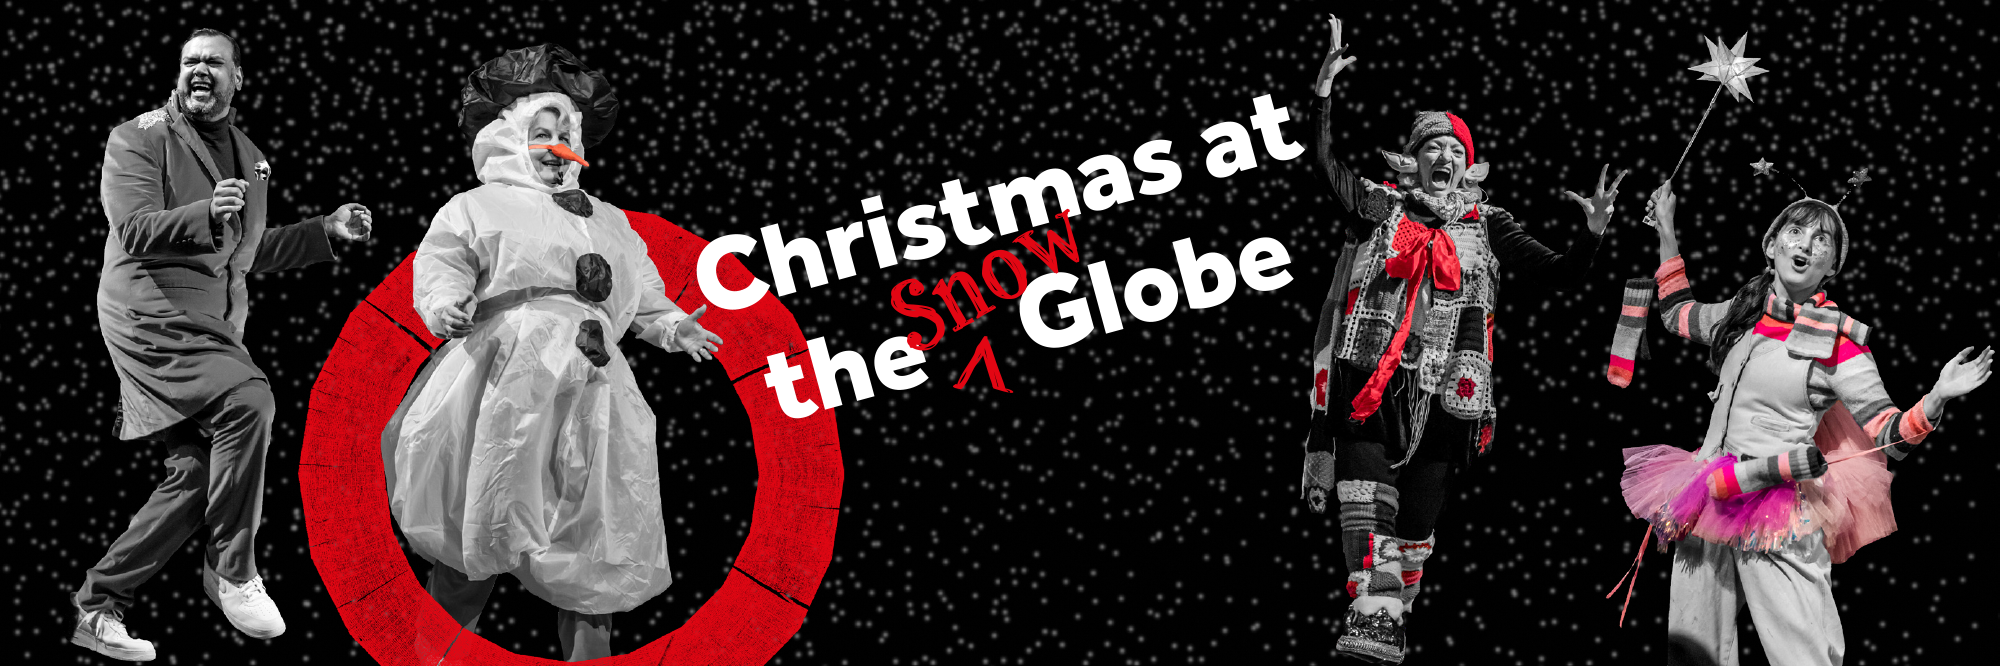 A group of actors wearing festive outfits, including a snowman costume and fairy, stand in various poses before a black snowy background, with the text: Christmas at the (Snow) Globe.